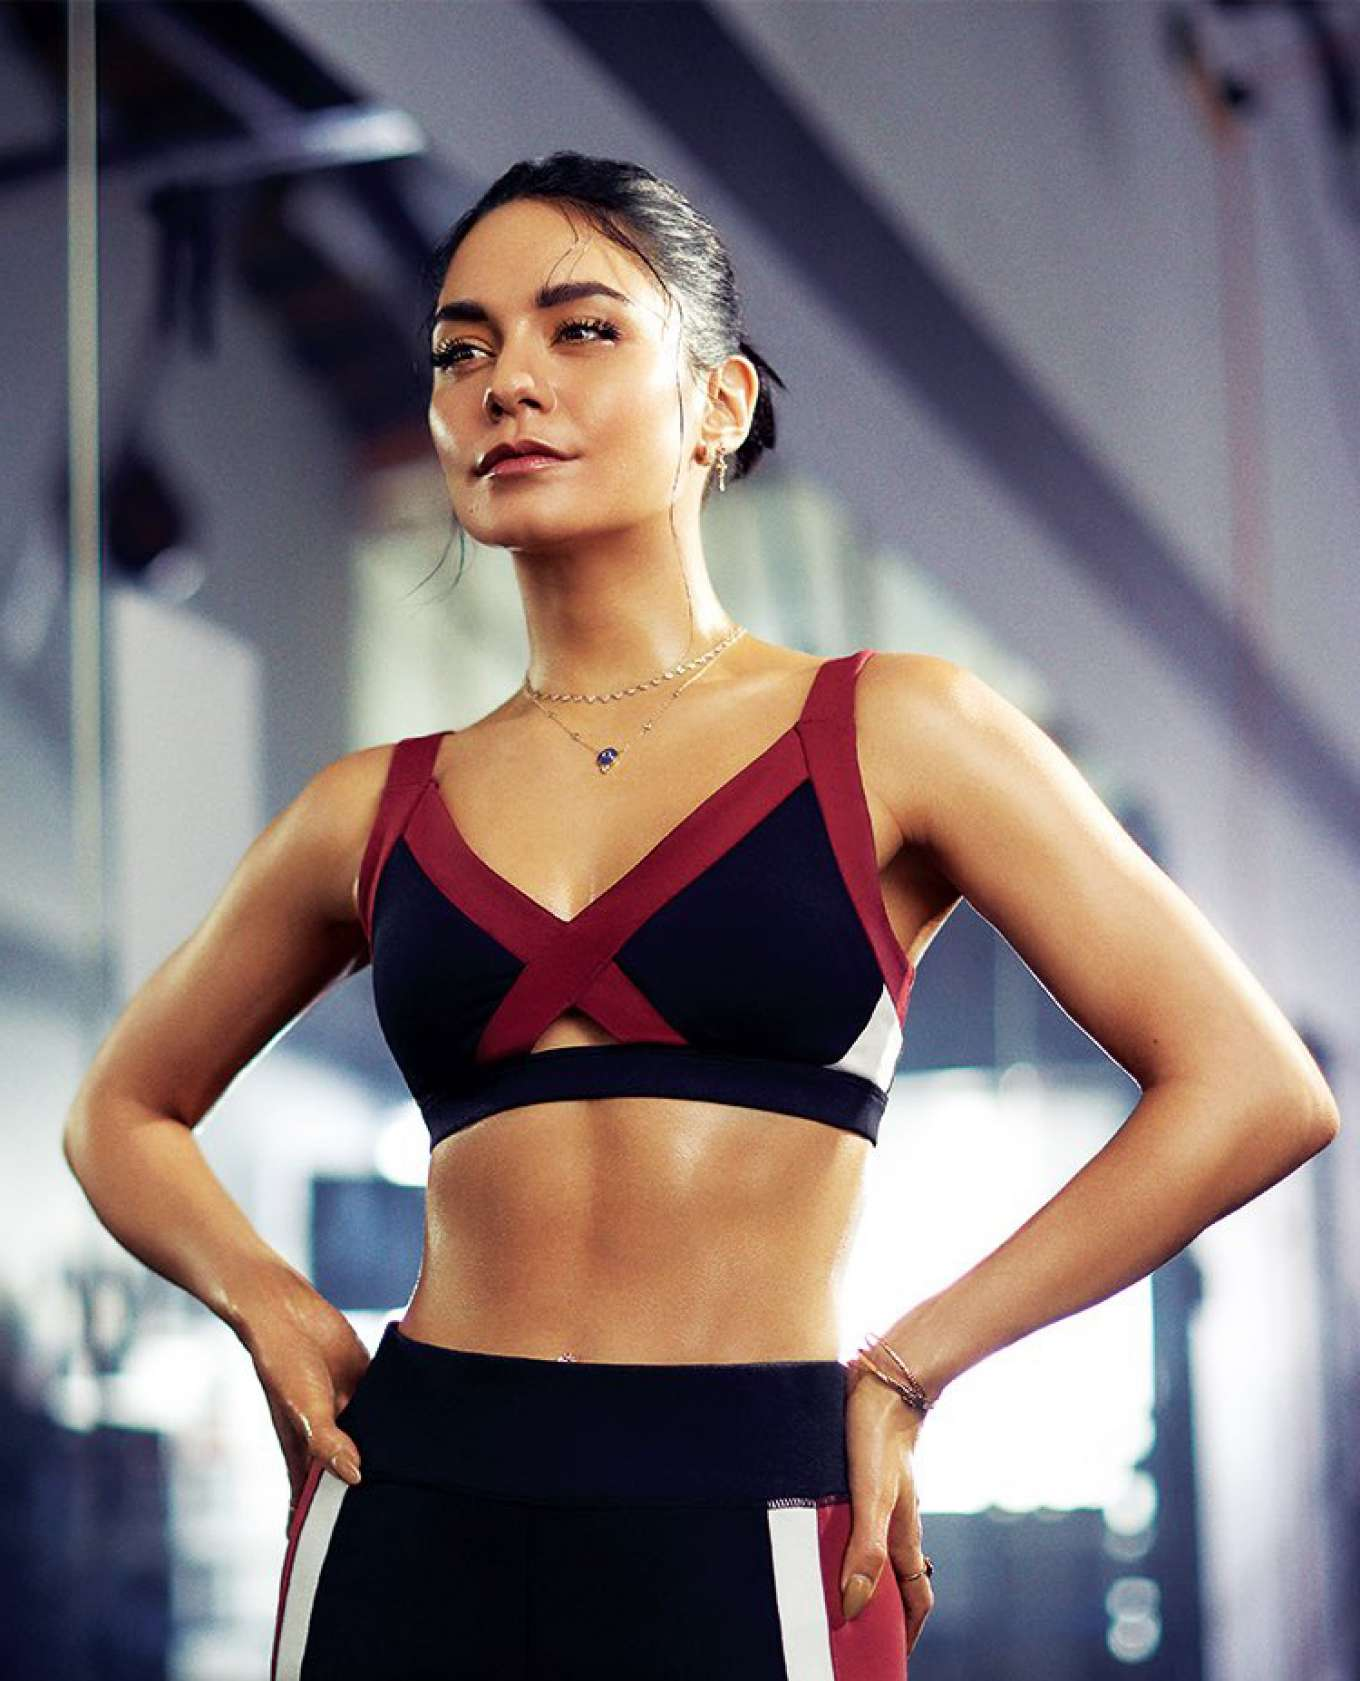 Vanessa Hudgens 2019 : Vanessa Hudgens – Vanessa Hudgens Collection x Avia Fitness 2019-09